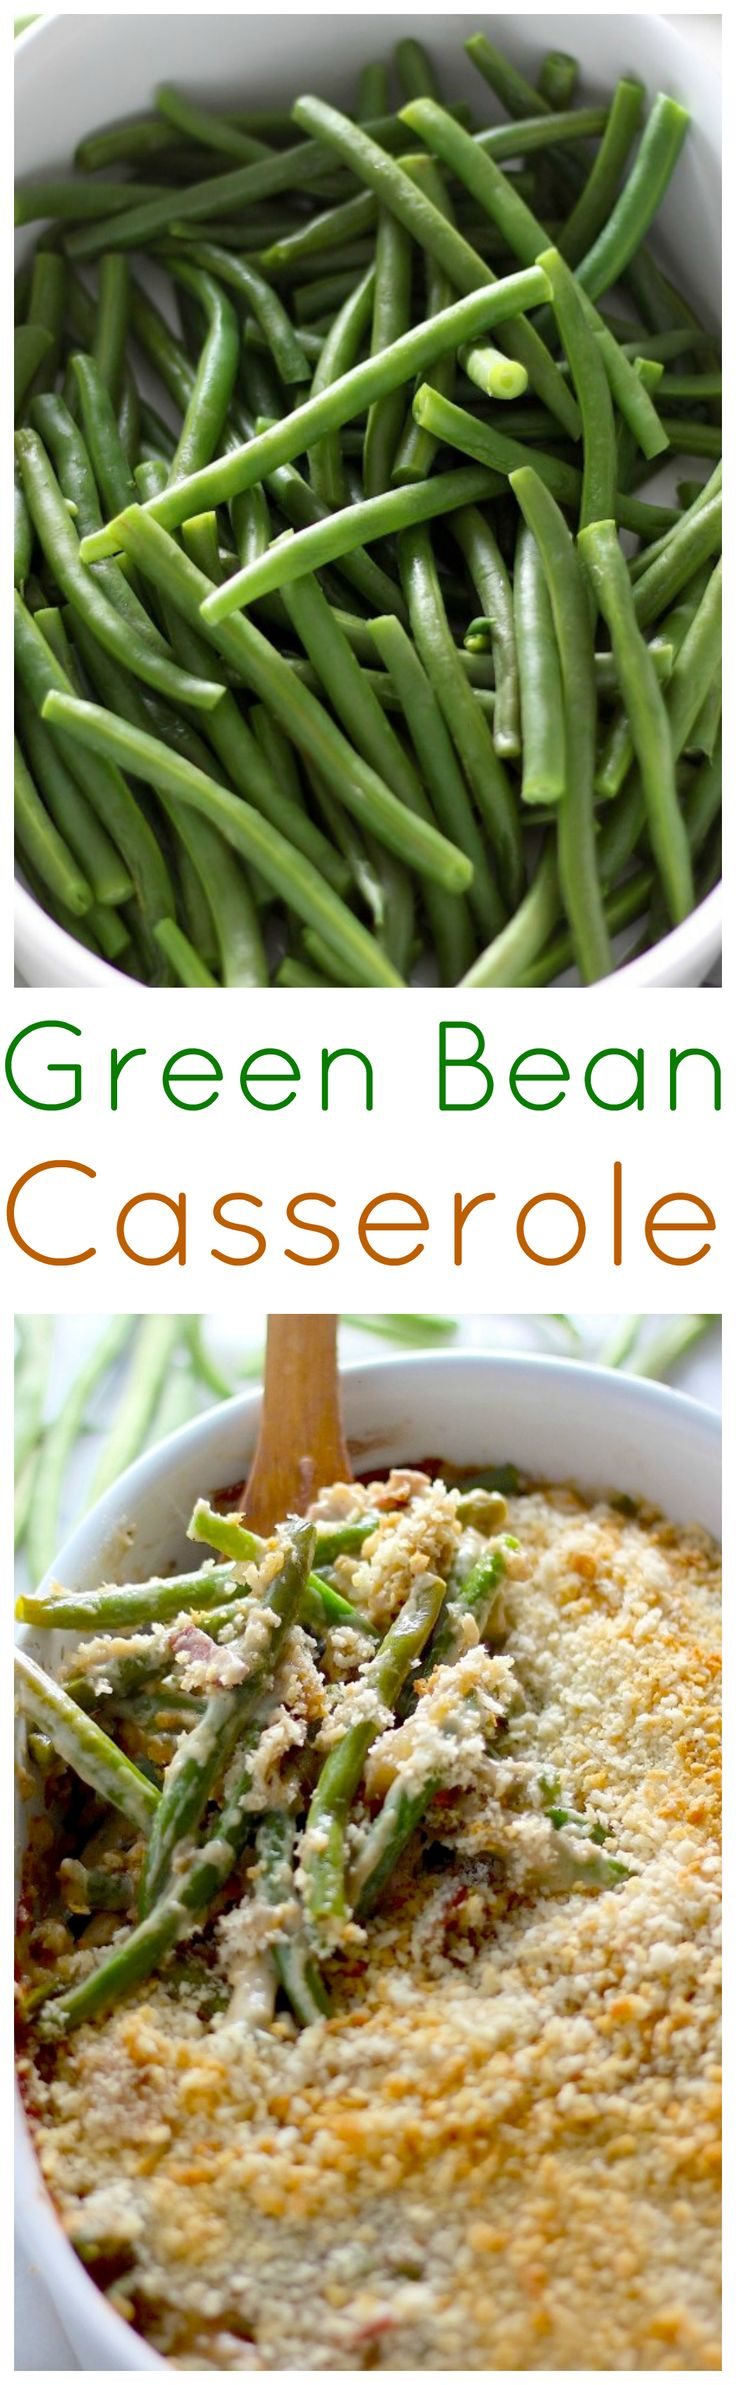 Loaded with bacon, gruyere cheese, and caramelized onions. This is the best green bean casserole ever!